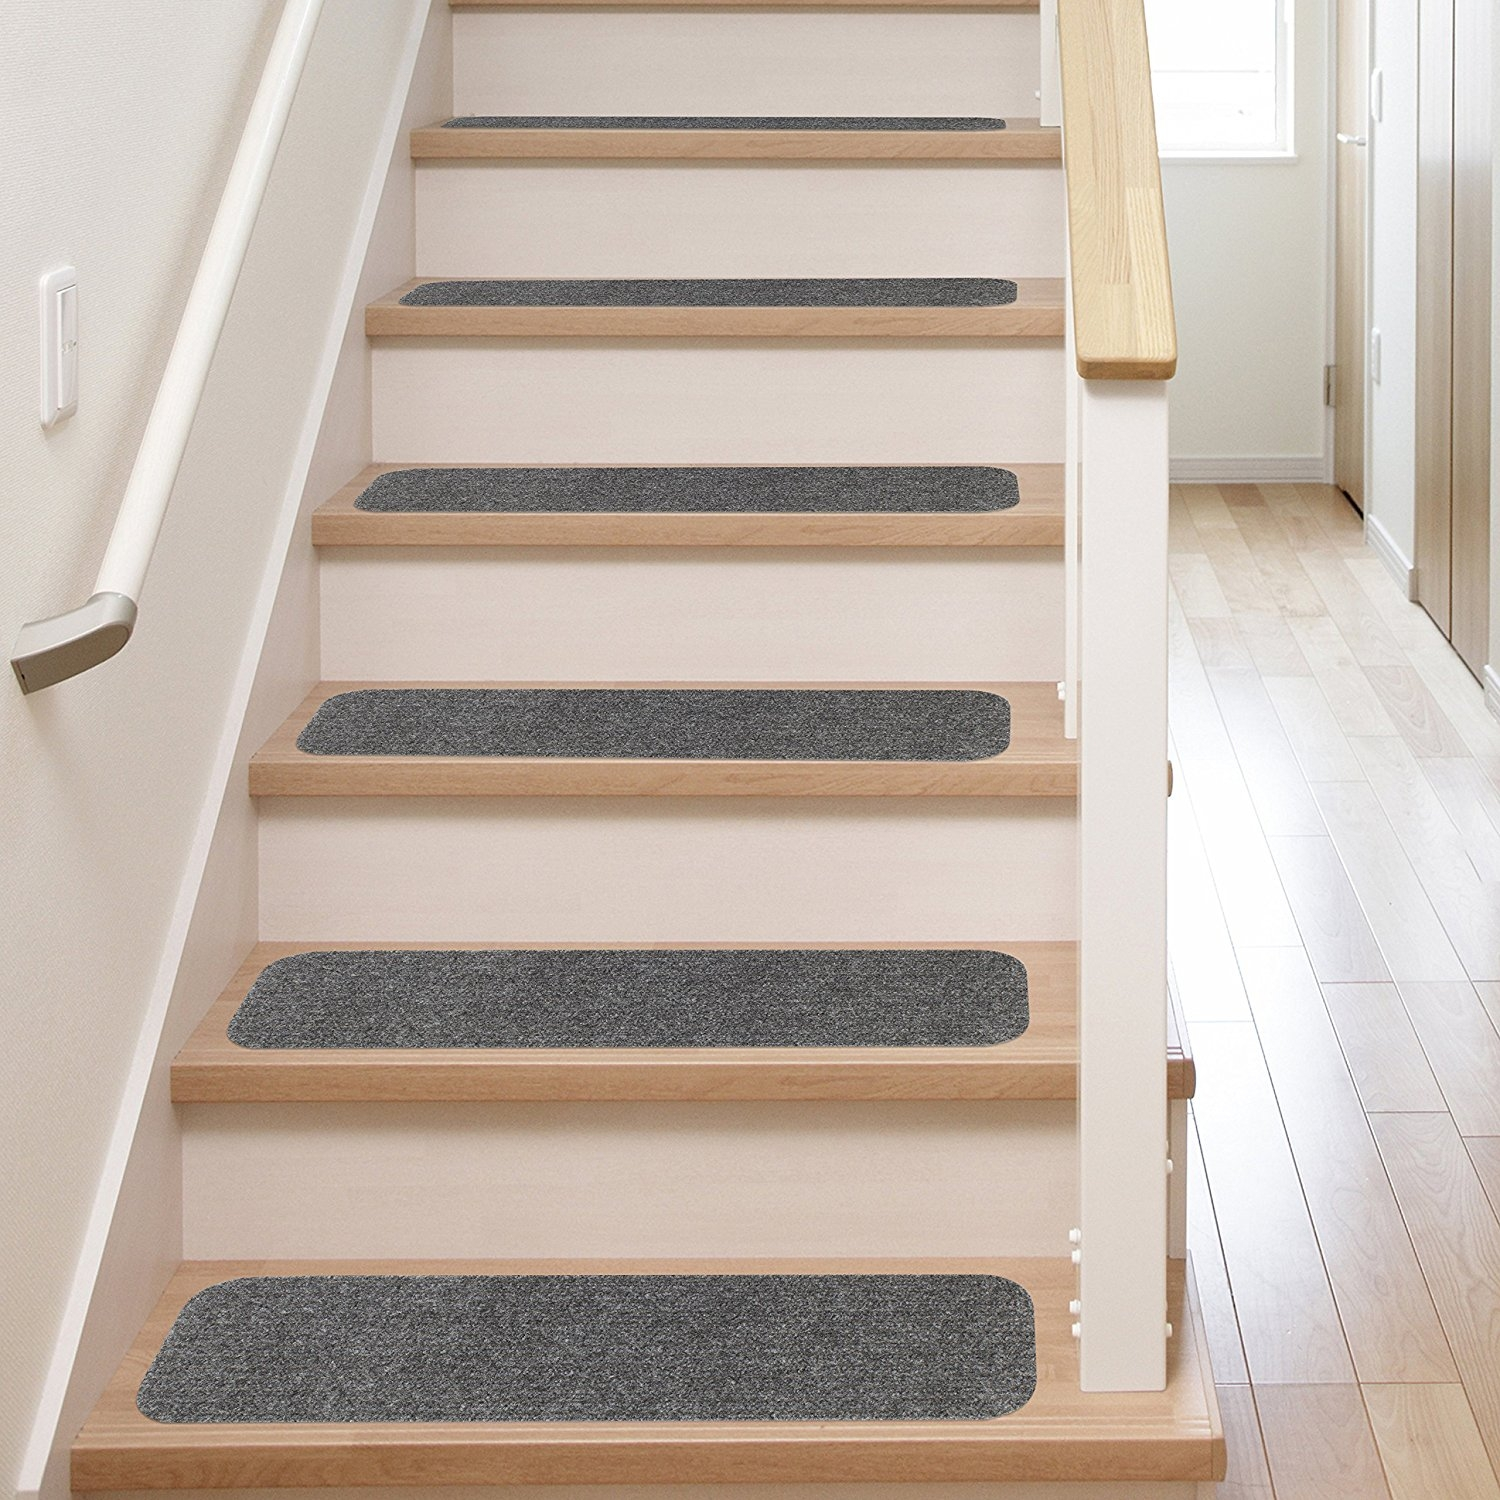 Staircase Step Treads Amazon Building Supplies Stair Parts Throughout Nonskid Solid Stairtread Rugs (Image 14 of 15)